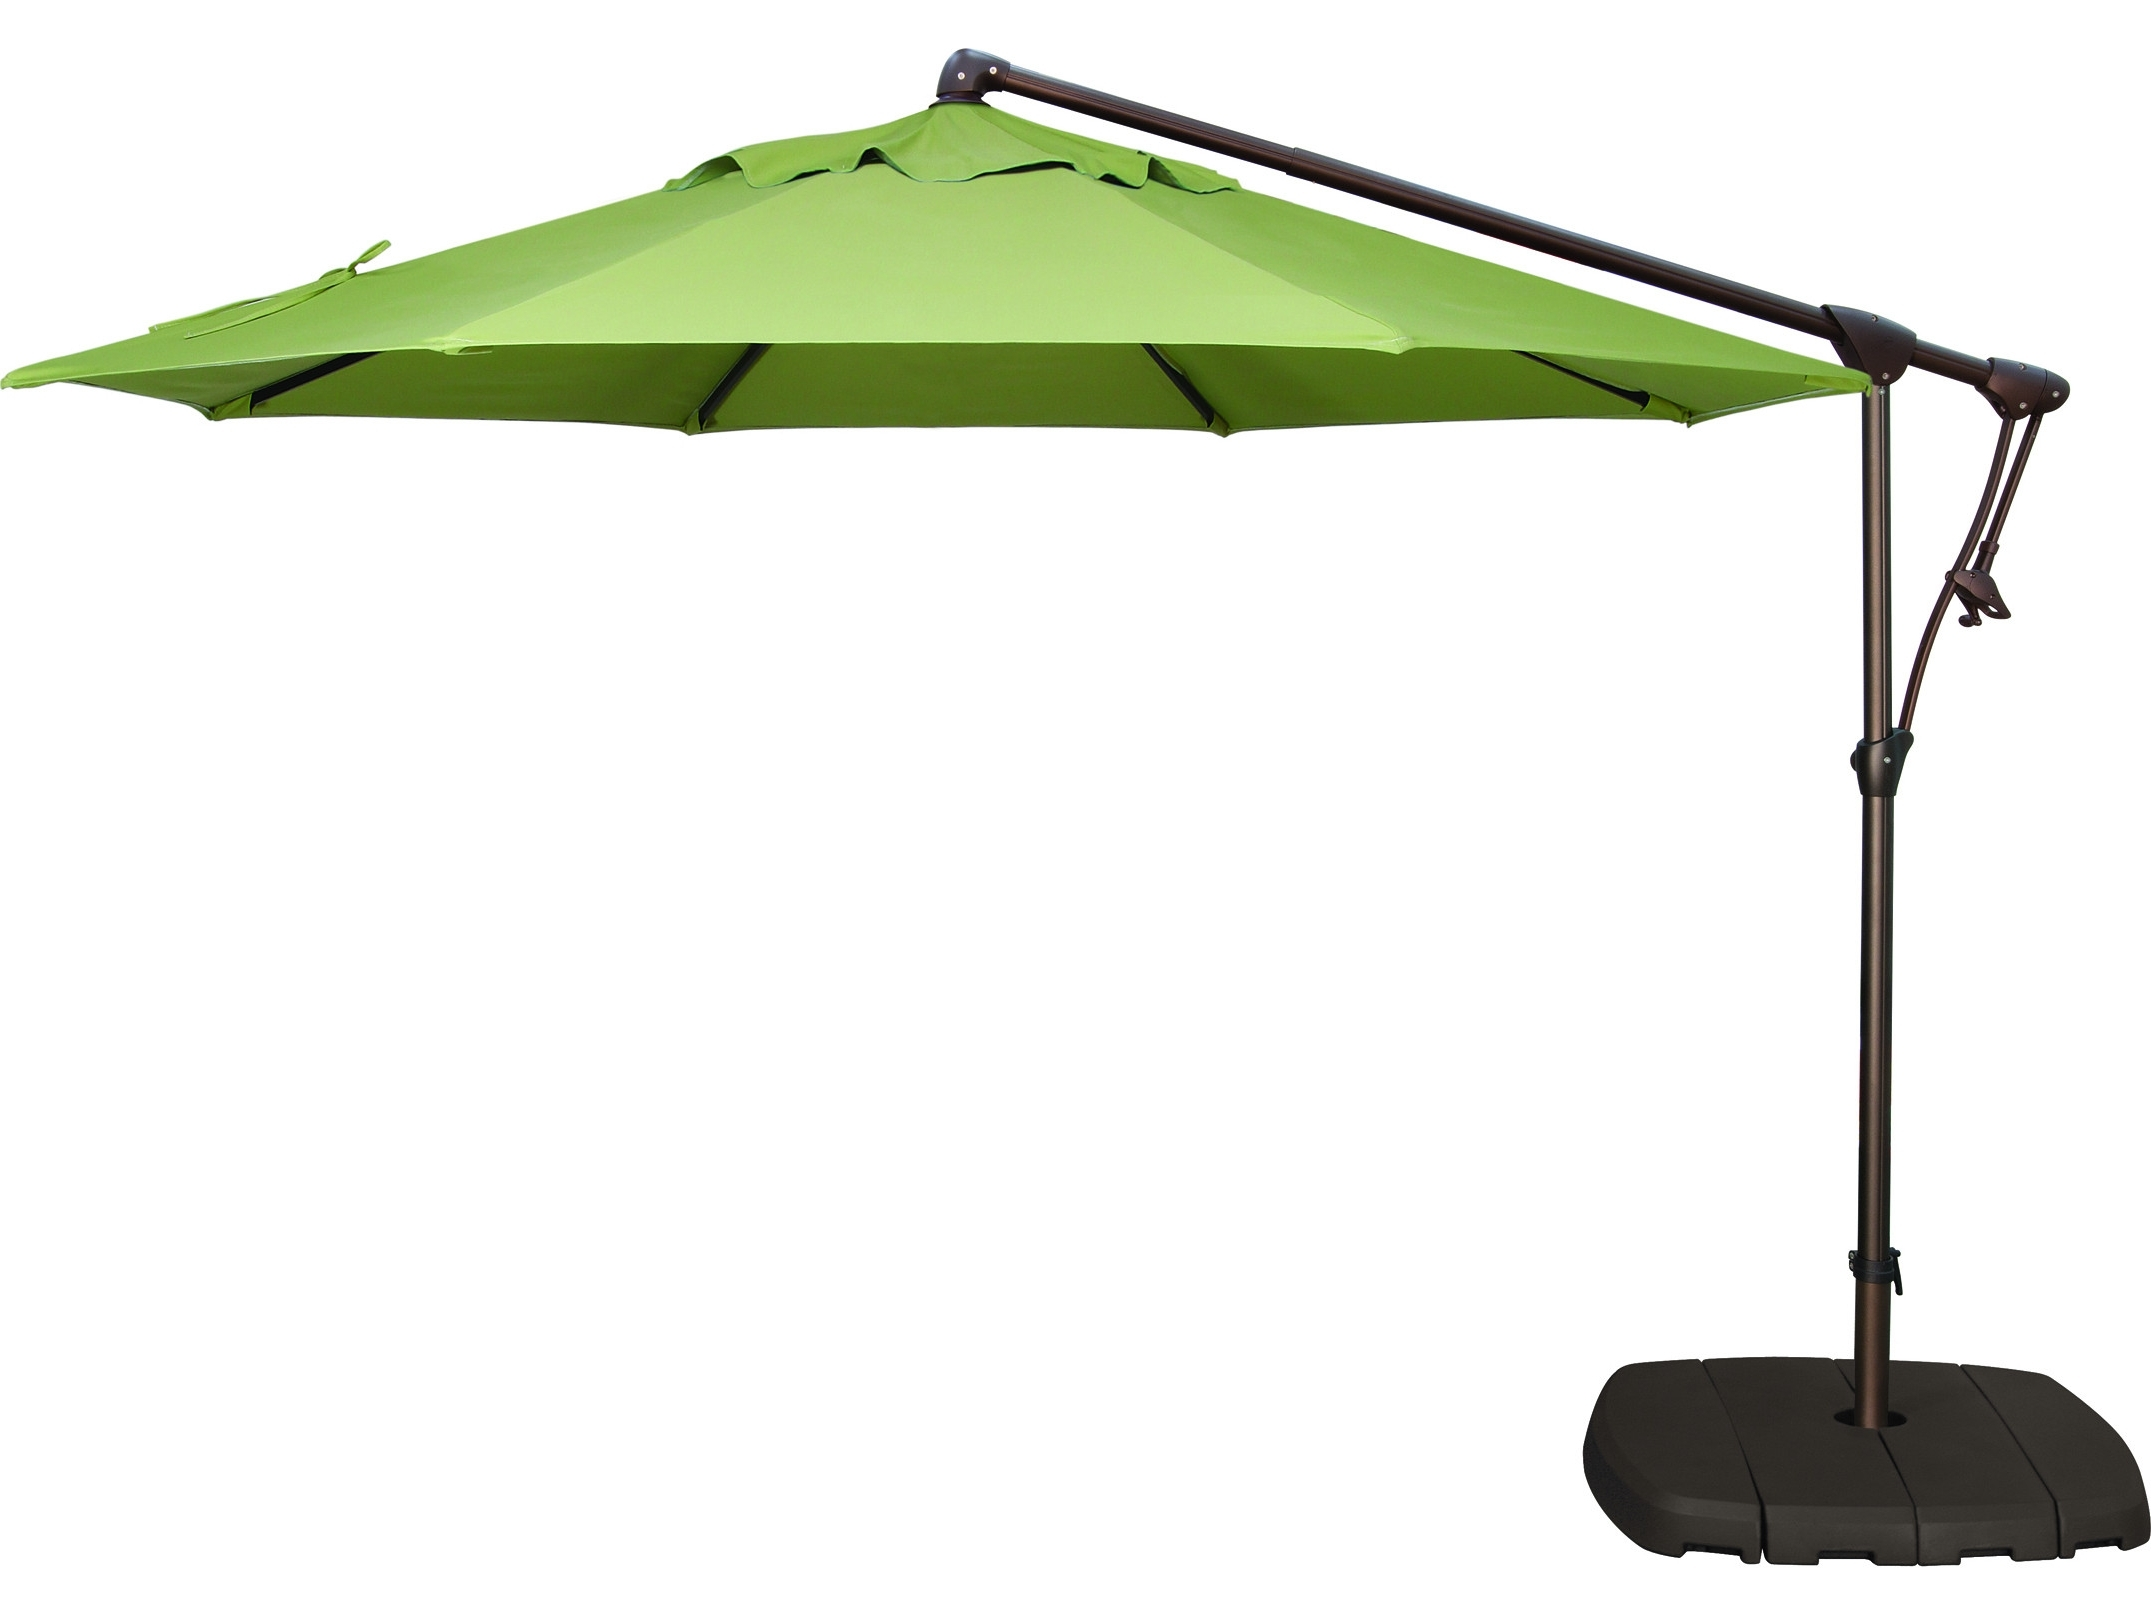 Most Popular Patio Umbrella Base With Wheels Popular Metal Patio Umbrellas With In Patio Umbrellas With Wheels (View 6 of 20)